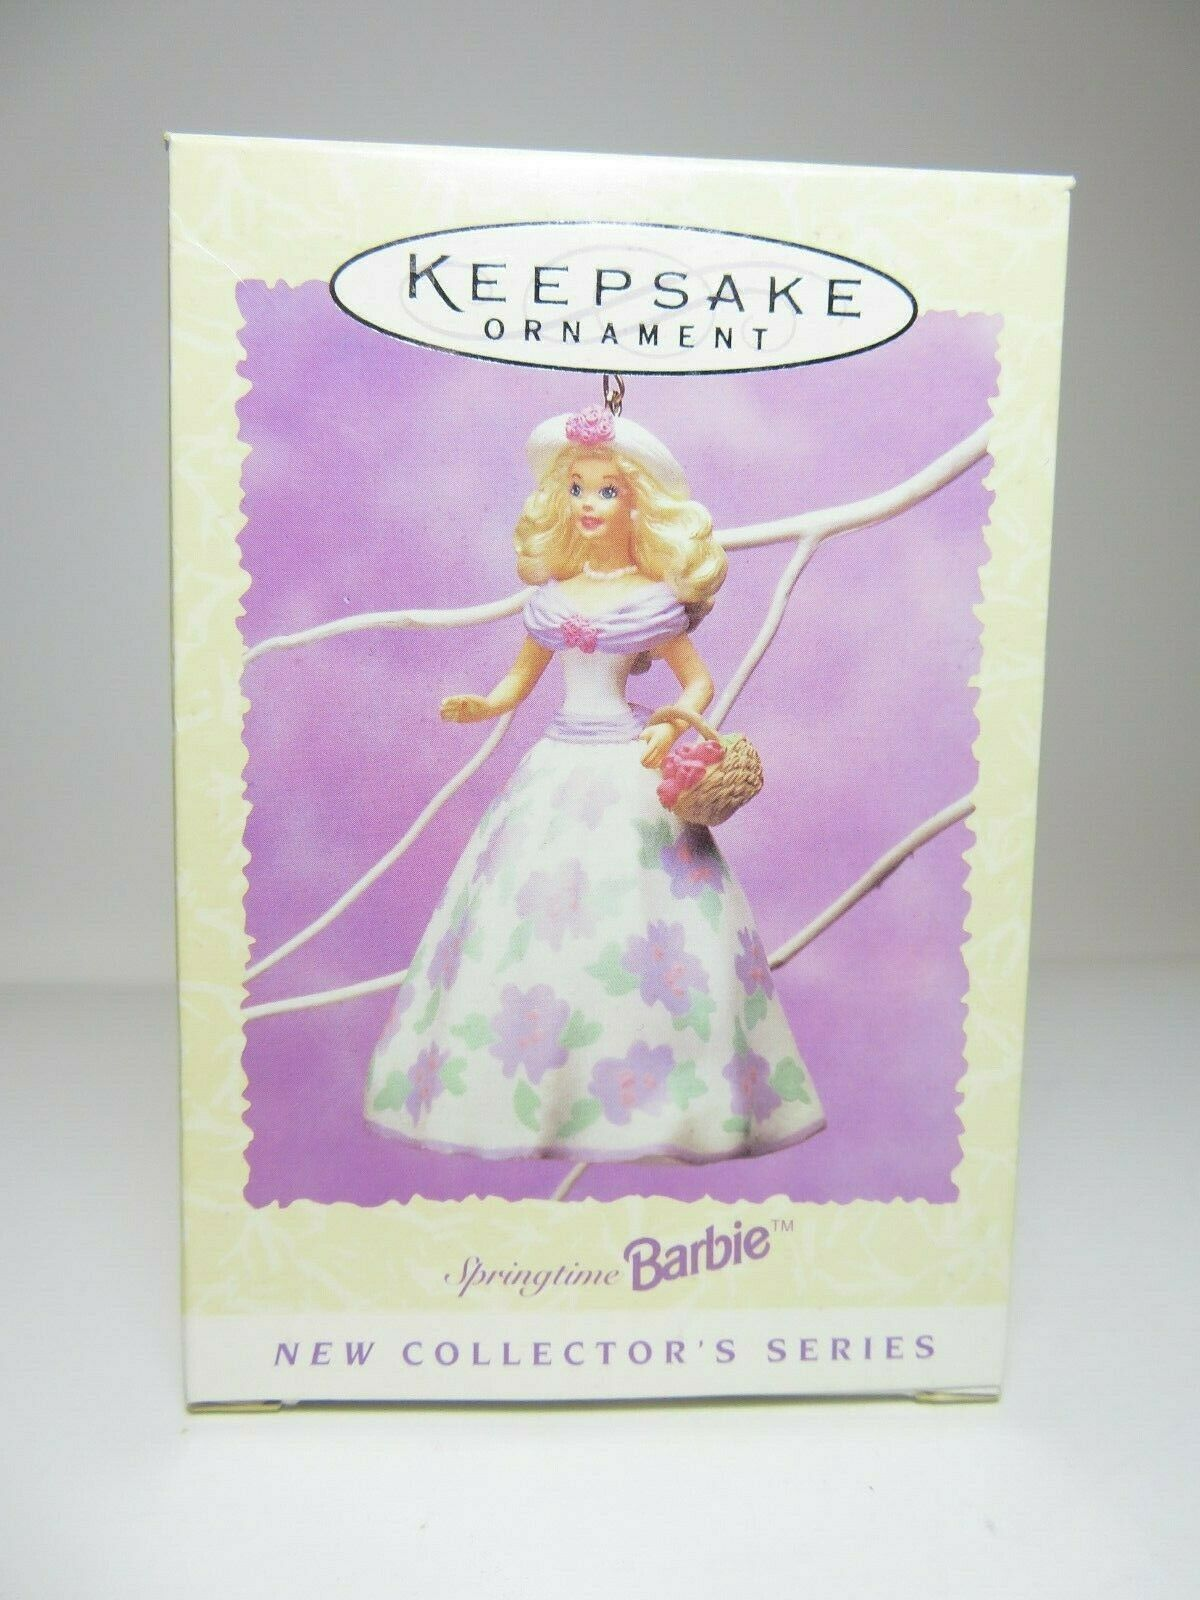 1995 Easter Collection Springtime Barbie Collectors Series Hallmark Ornament #1